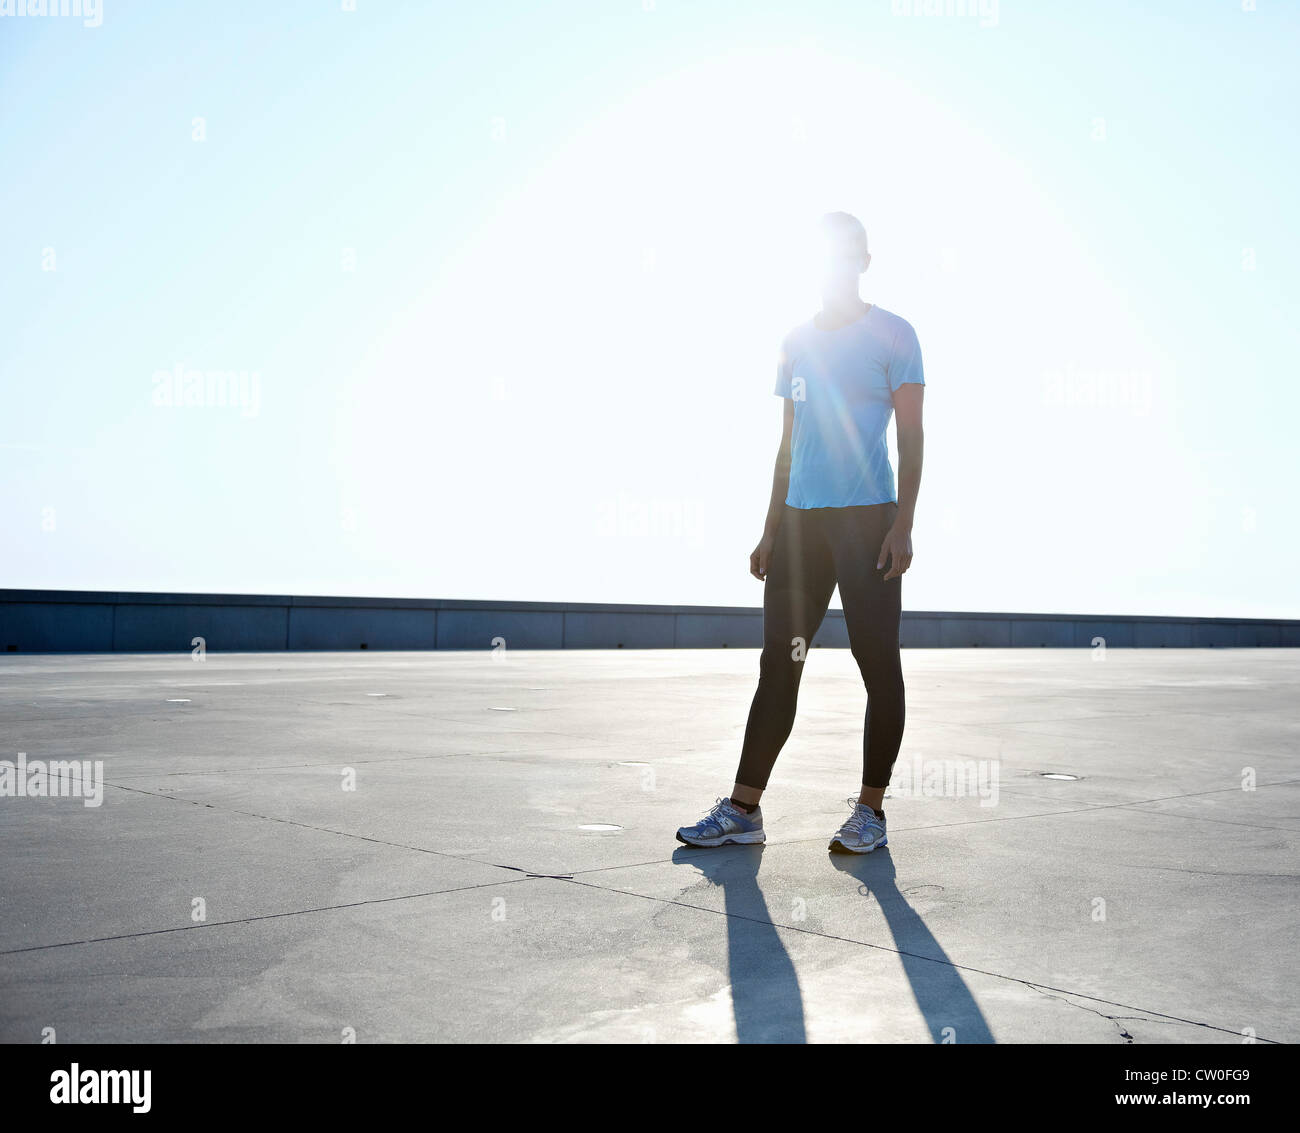 Runner standing on rooftop - Stock Image